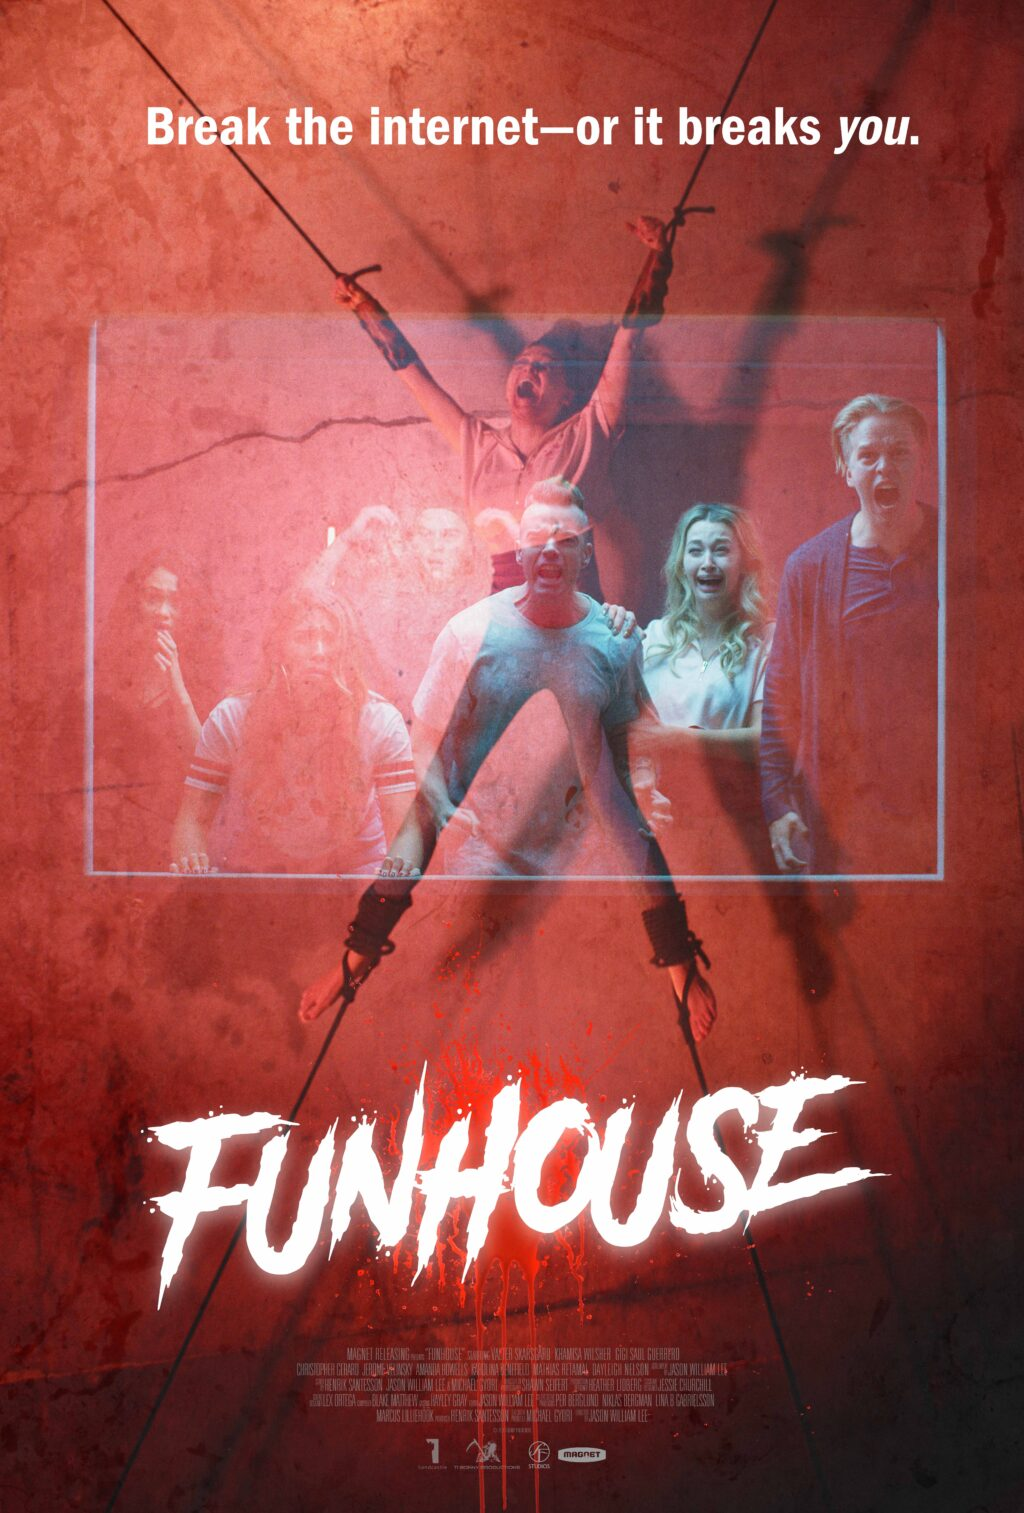 funhouse D5a FINAL 72dpi 1024x1513 - Check Out Gigi Saul Guerrero in the New Trailer for FUNHOUSE Arriving May 28th